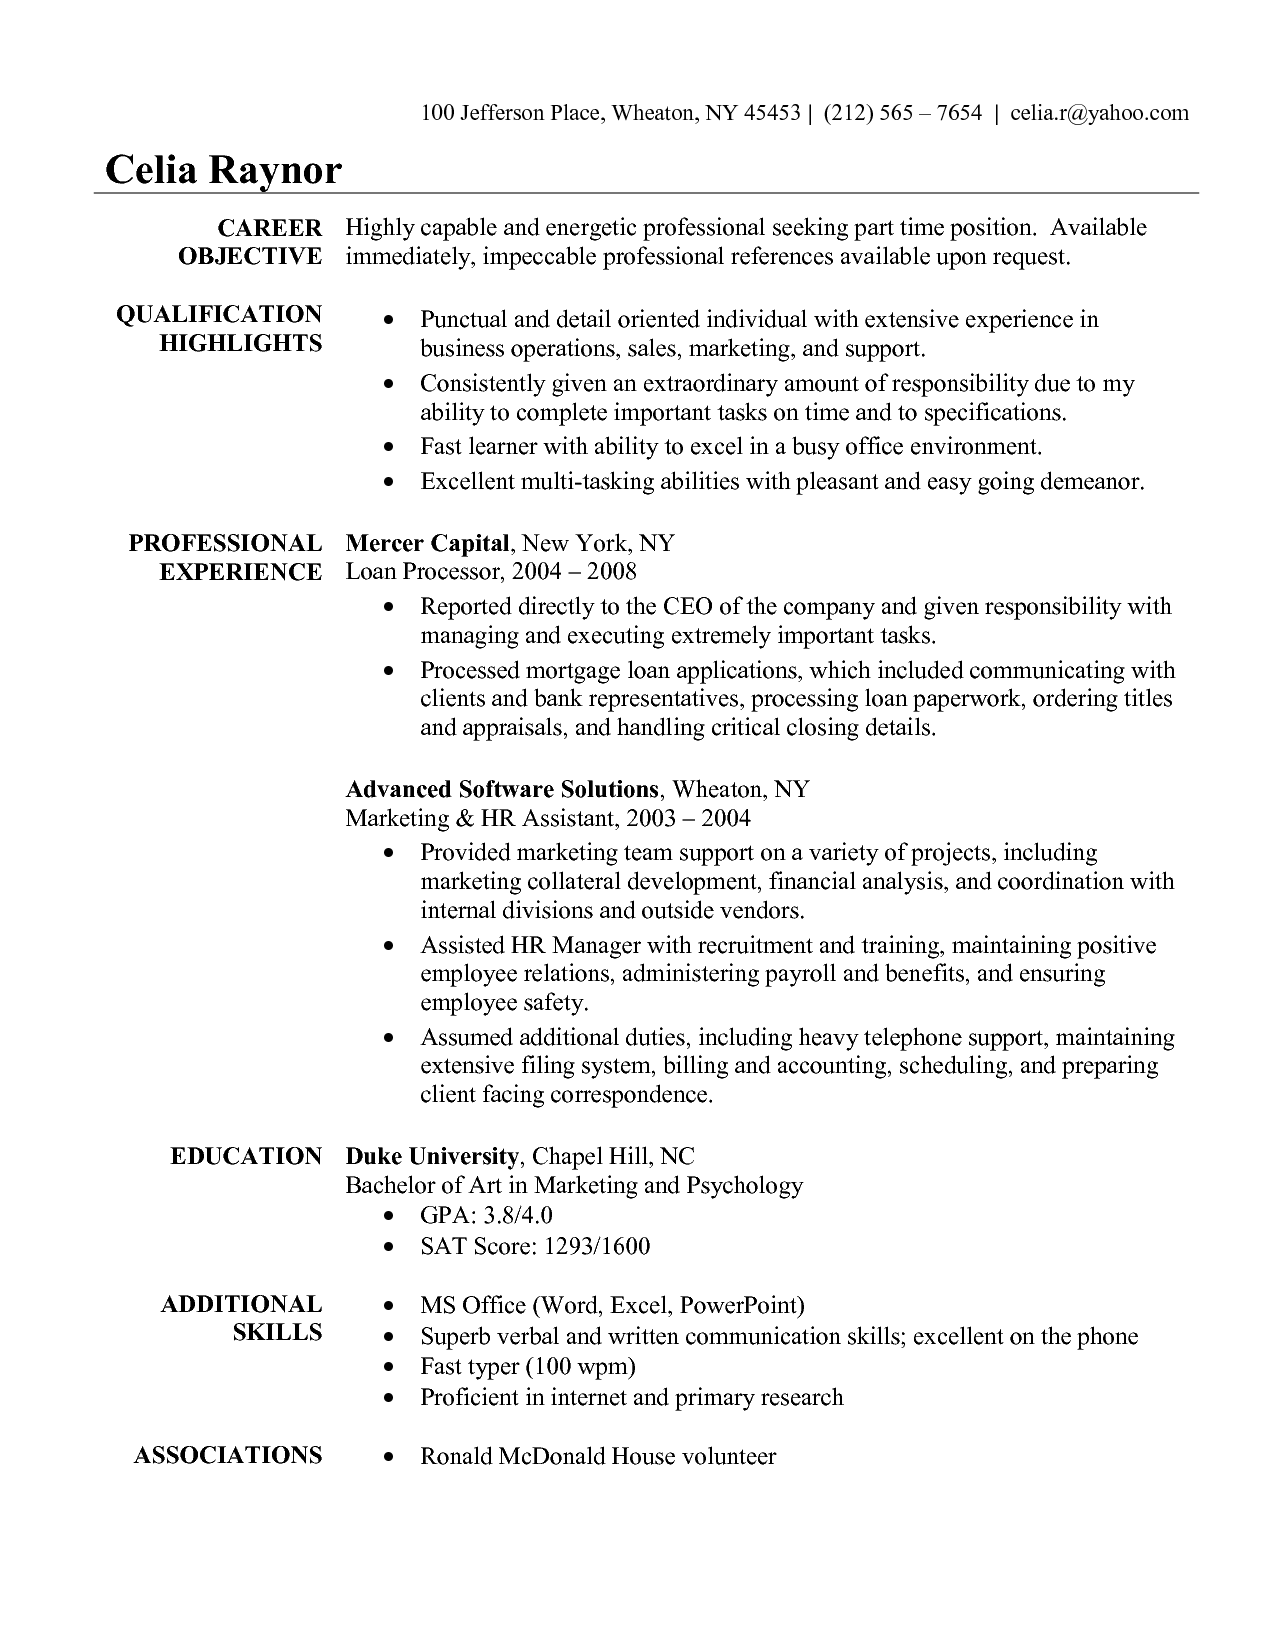 Administrative Secretary Resume Amusing Resume Sample For Administrative Assistant Resume Samples For .